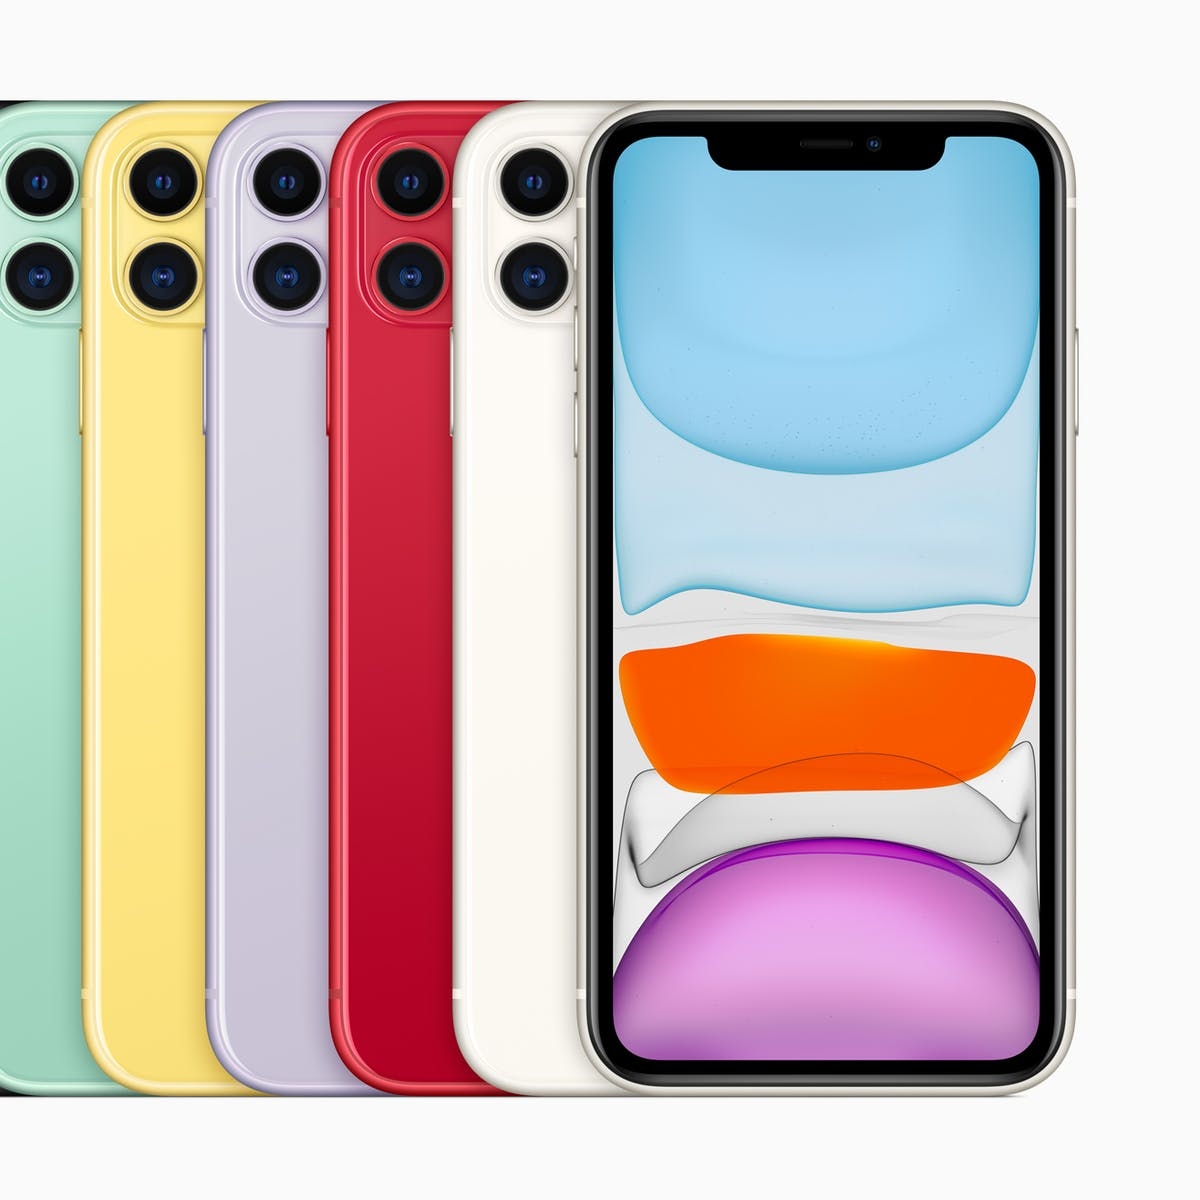 iPhone 11 reviews: 'terrific' battery and camera, but maybe wait to upgrade